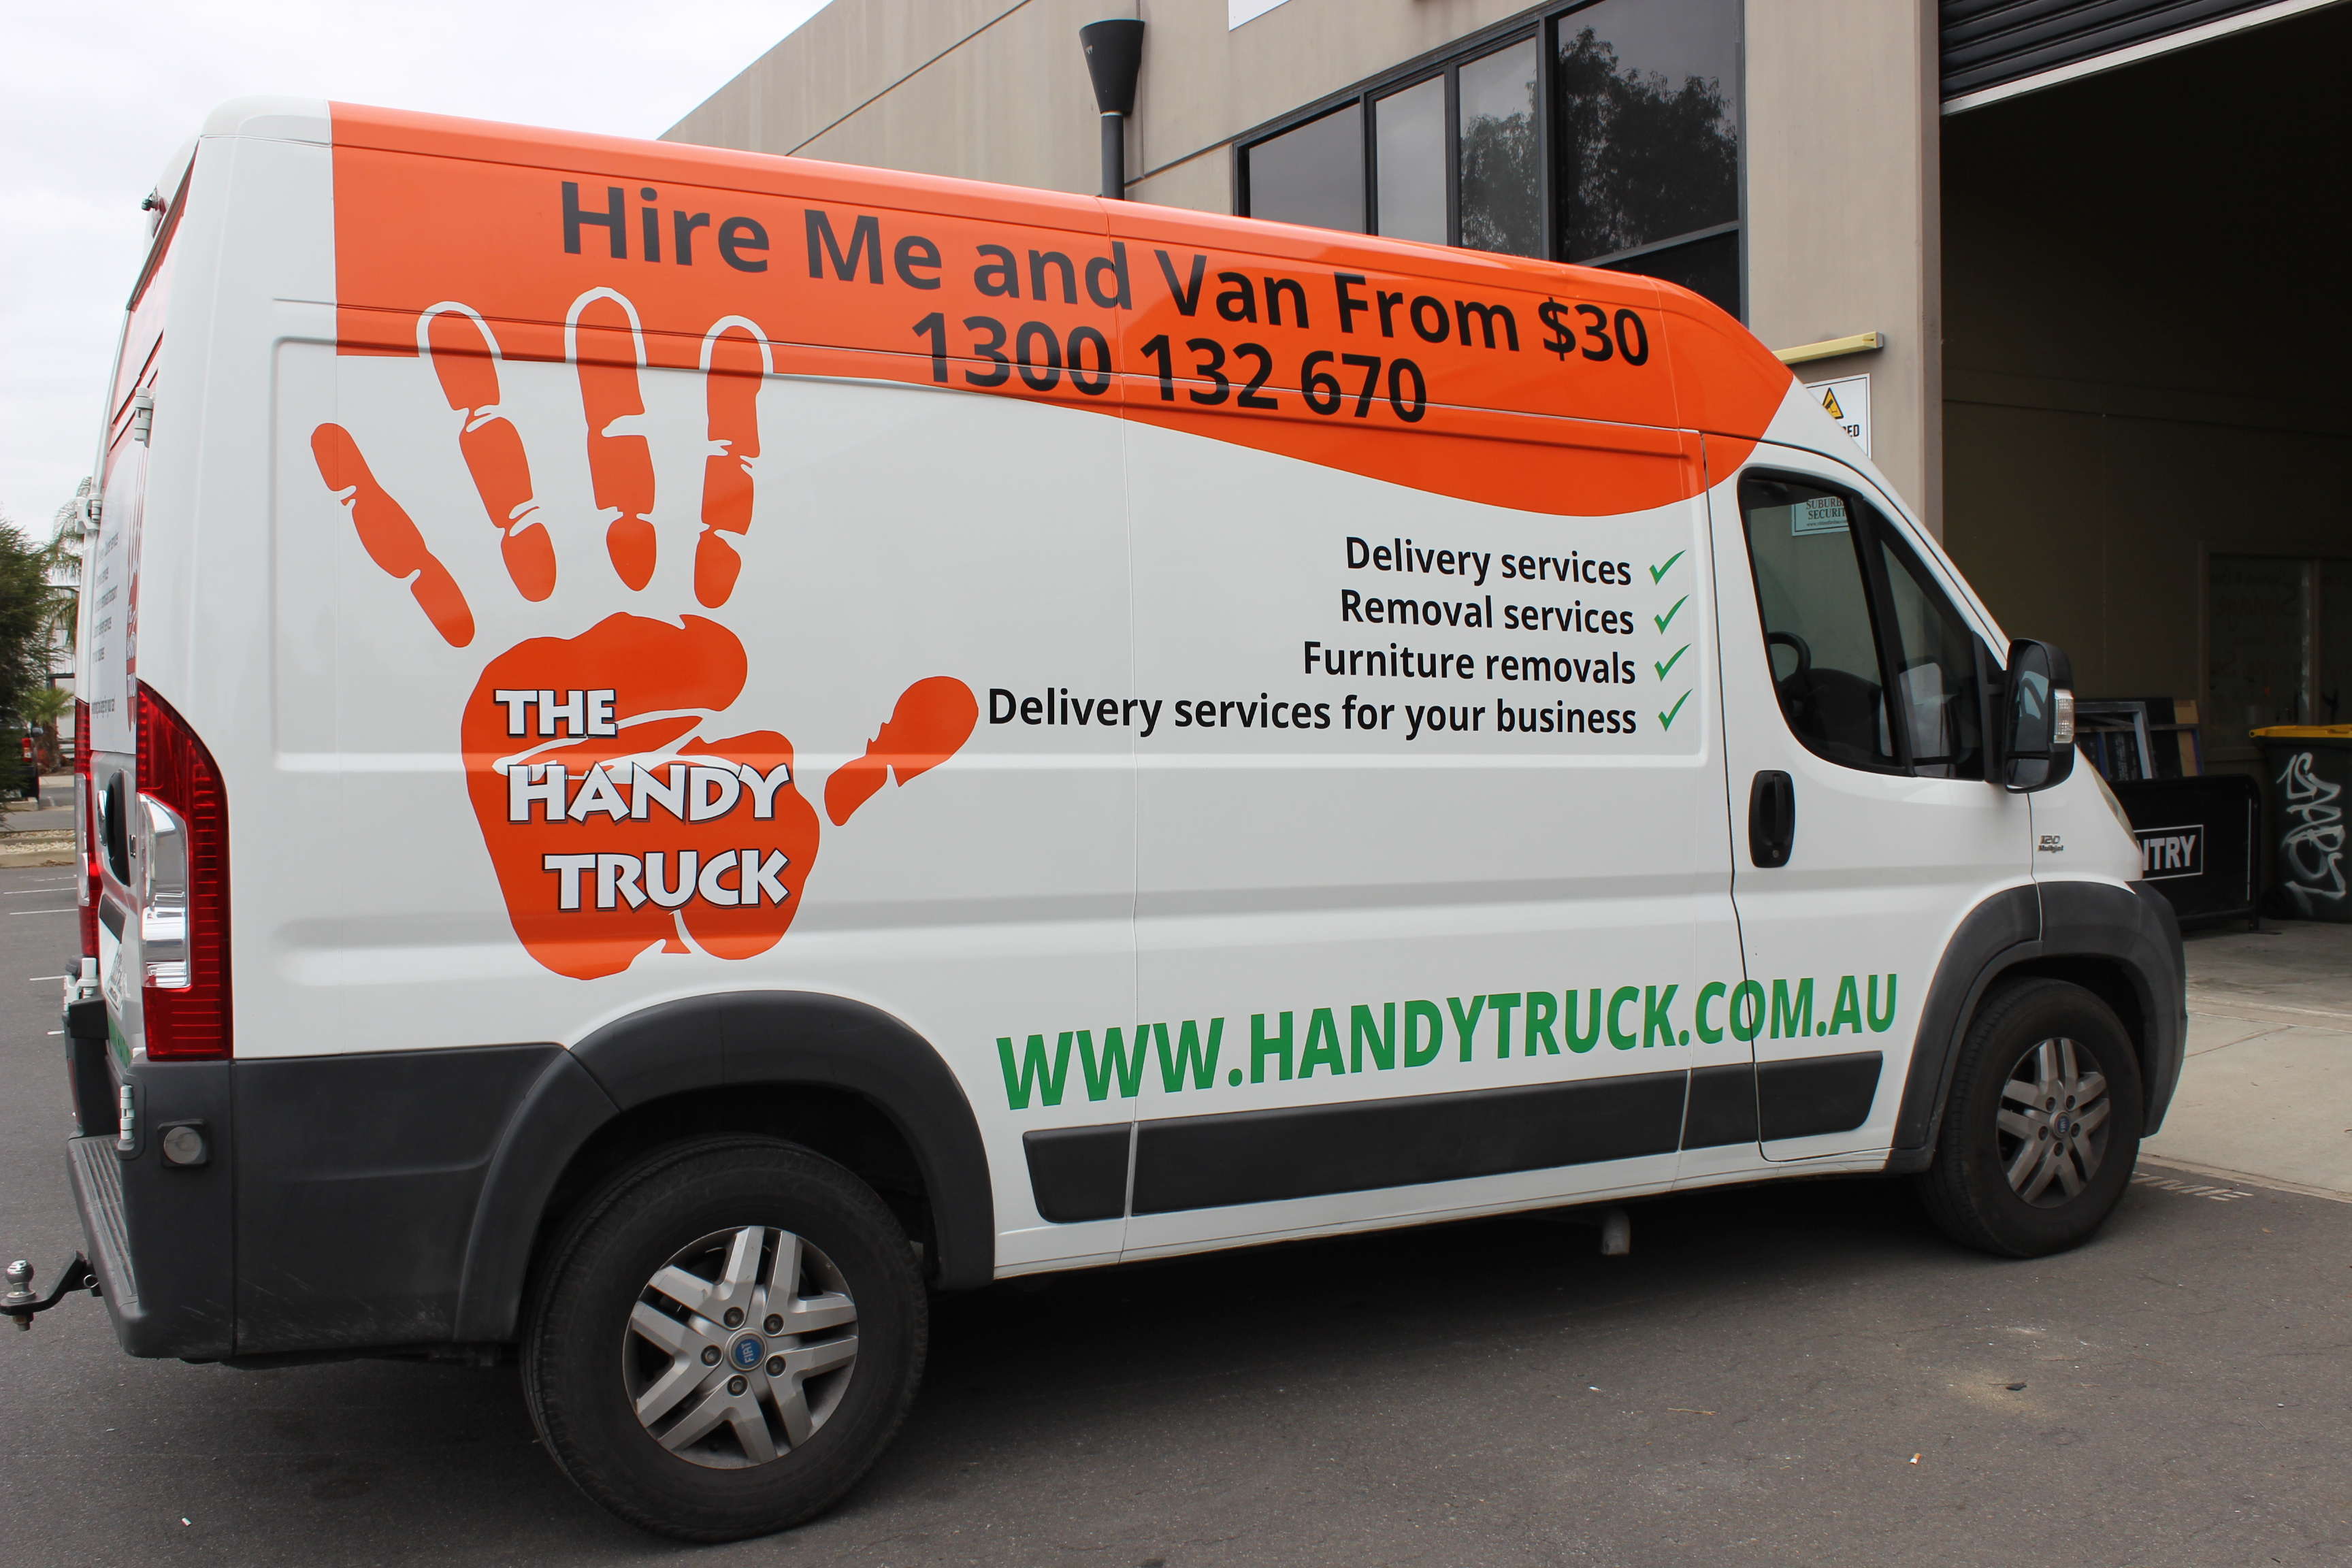 Your delivery and removalist service in Glenroy